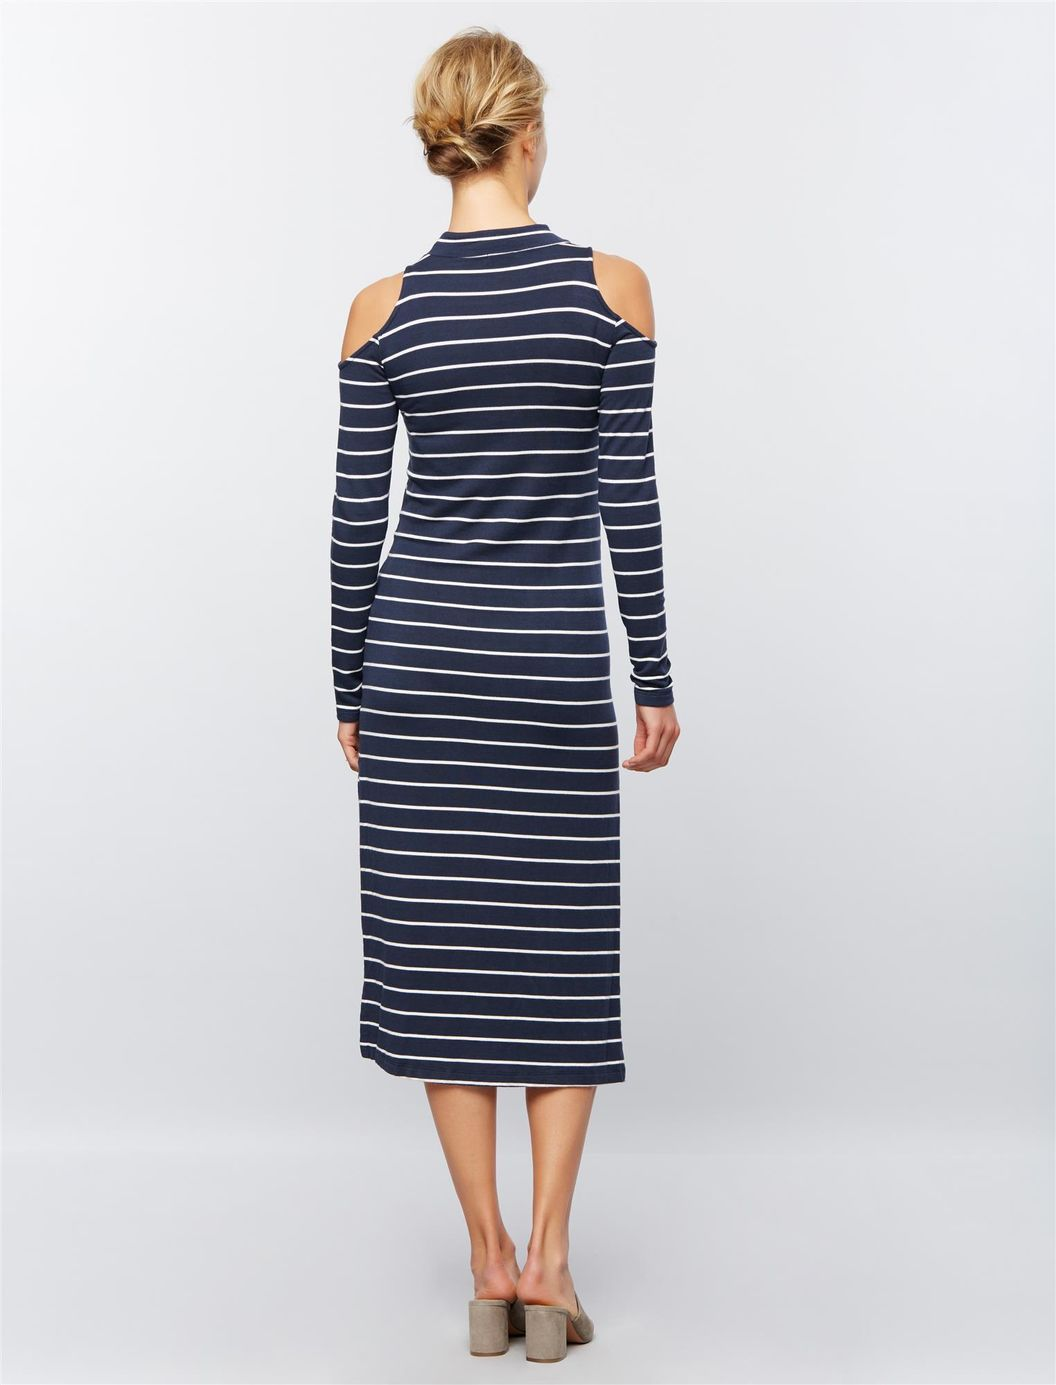 Splendid cold shoulder maternity dress navy stripes ideas